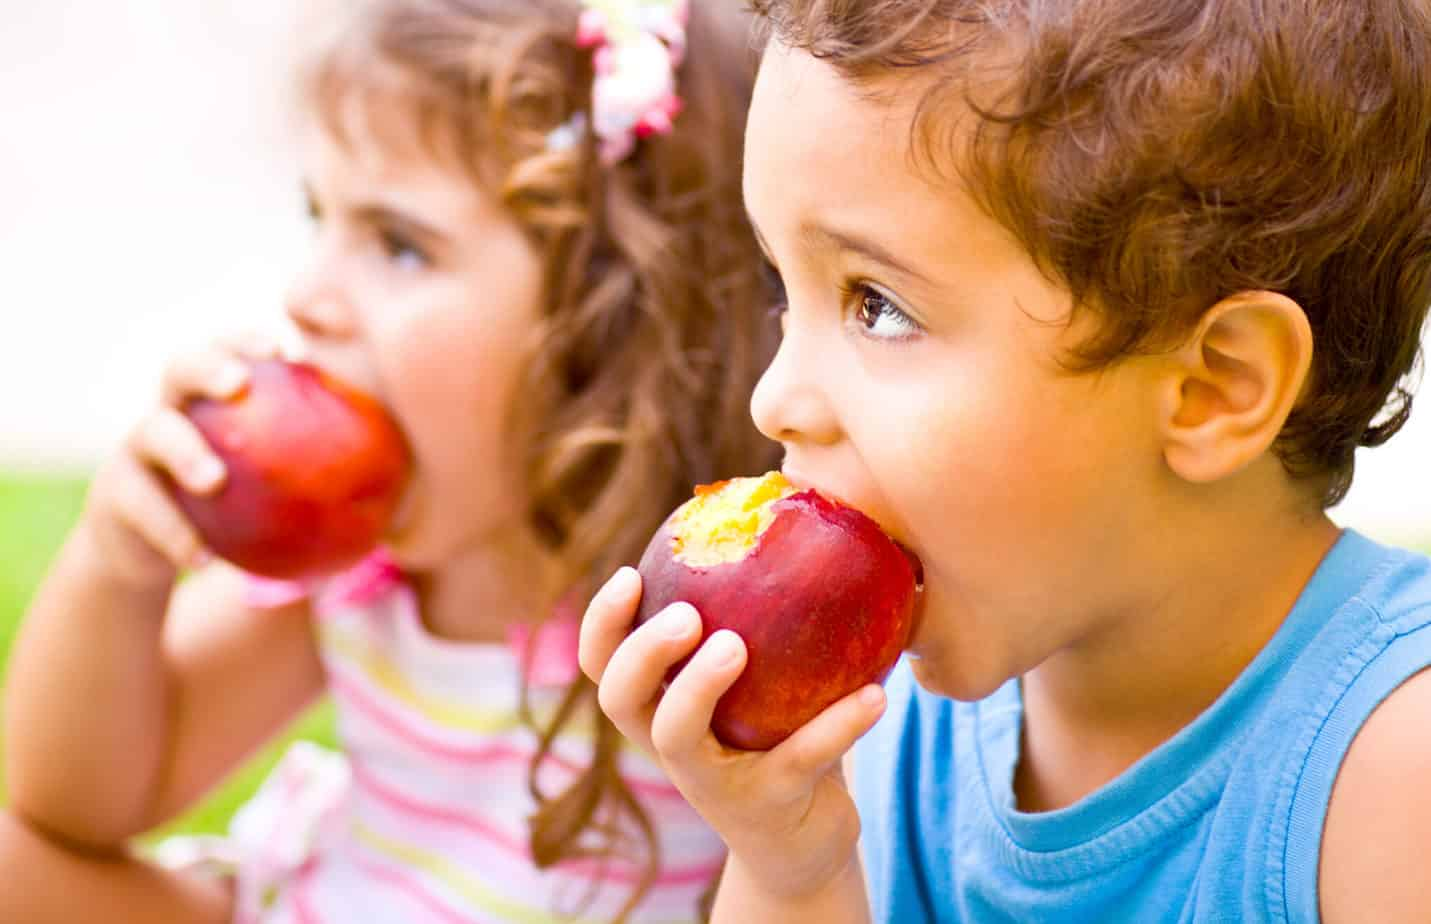 find natural ways to help you promote wellness with your children, and tips for living a healthy lifestyle, as well as natural methods my own family uses to kick cold and stay healthy during cold and flu season. Health kids resources for a healthy family life!